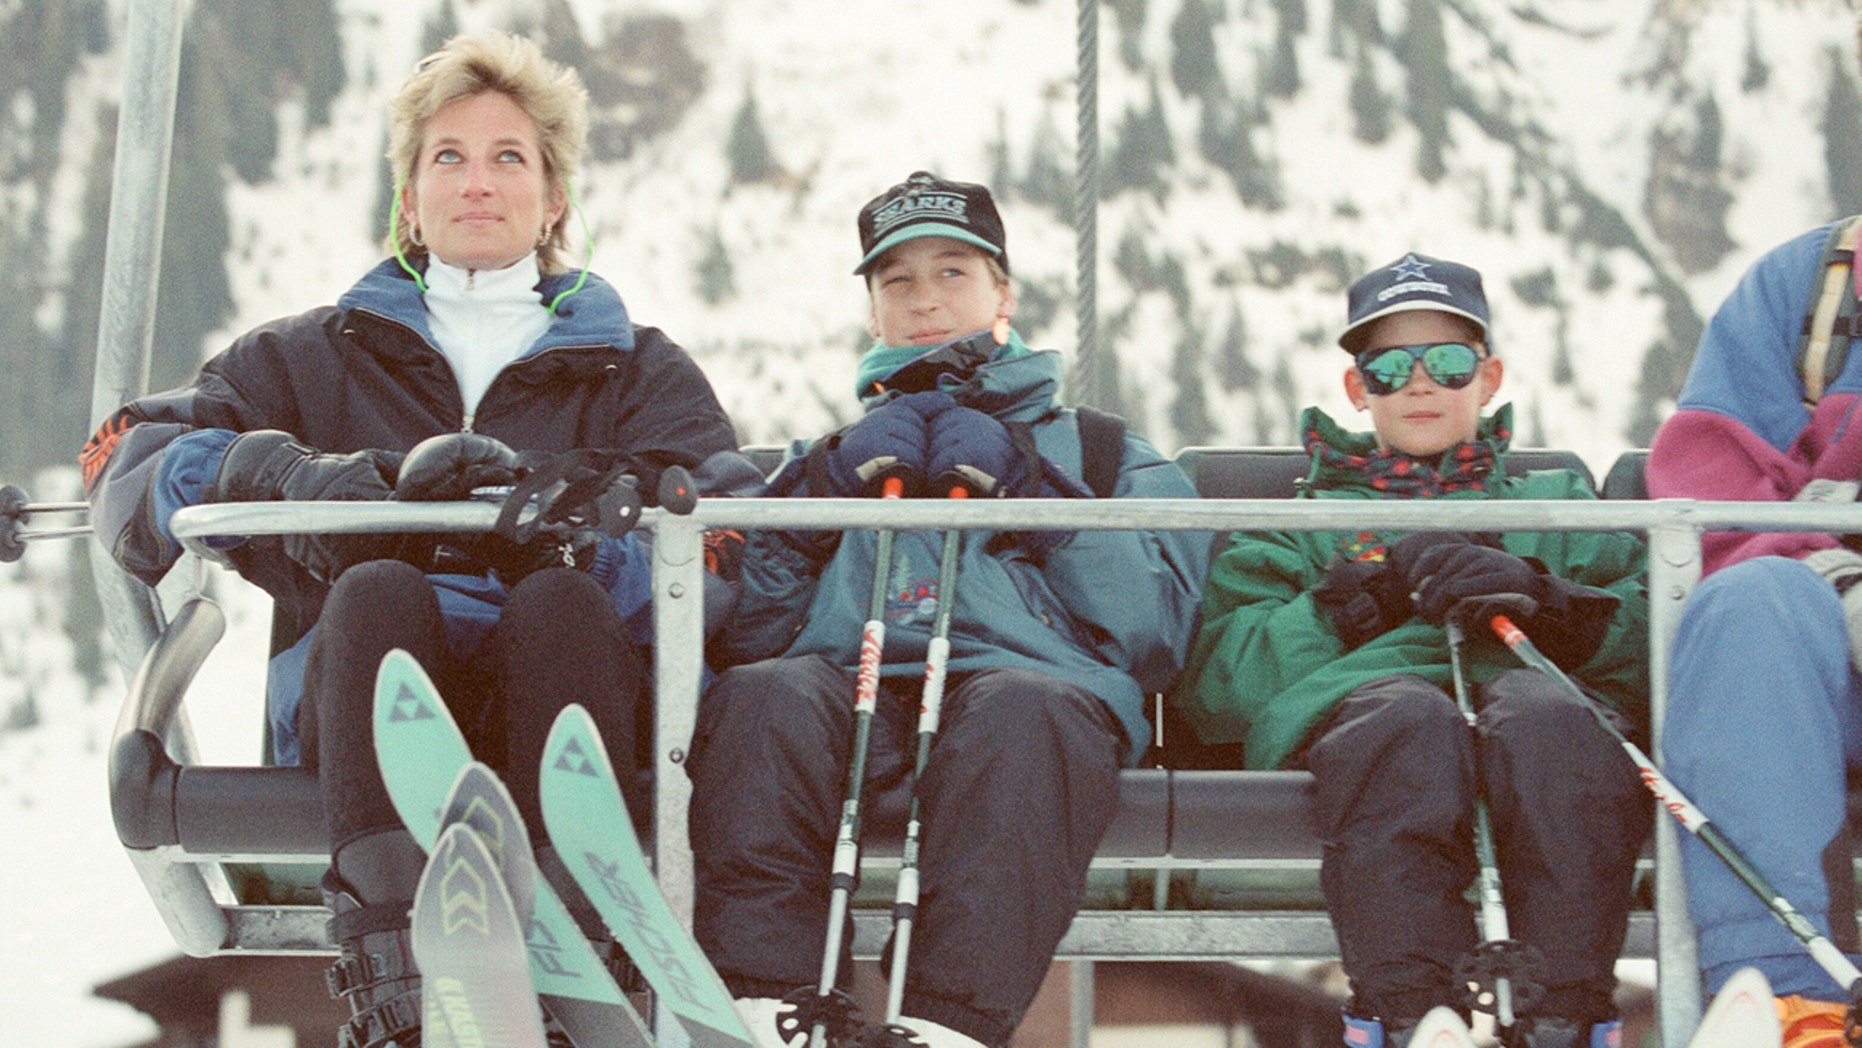 Princess Diana on a ski holiday with her sons in Lech, Austria, on March 25, 1994.